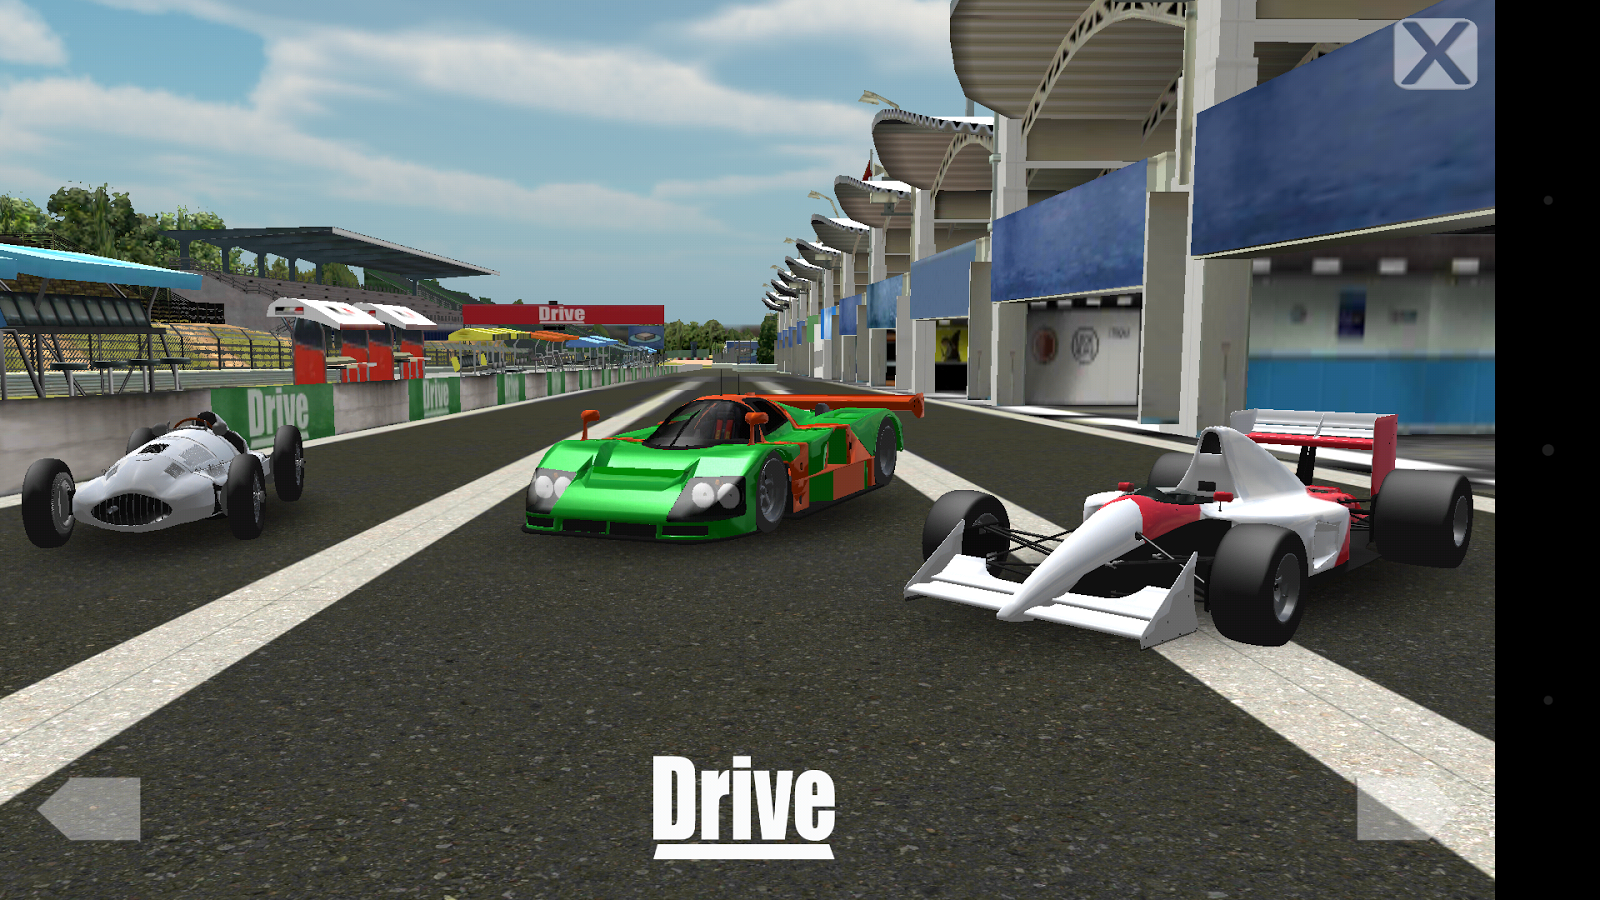 Drive Sim Screenshot 2